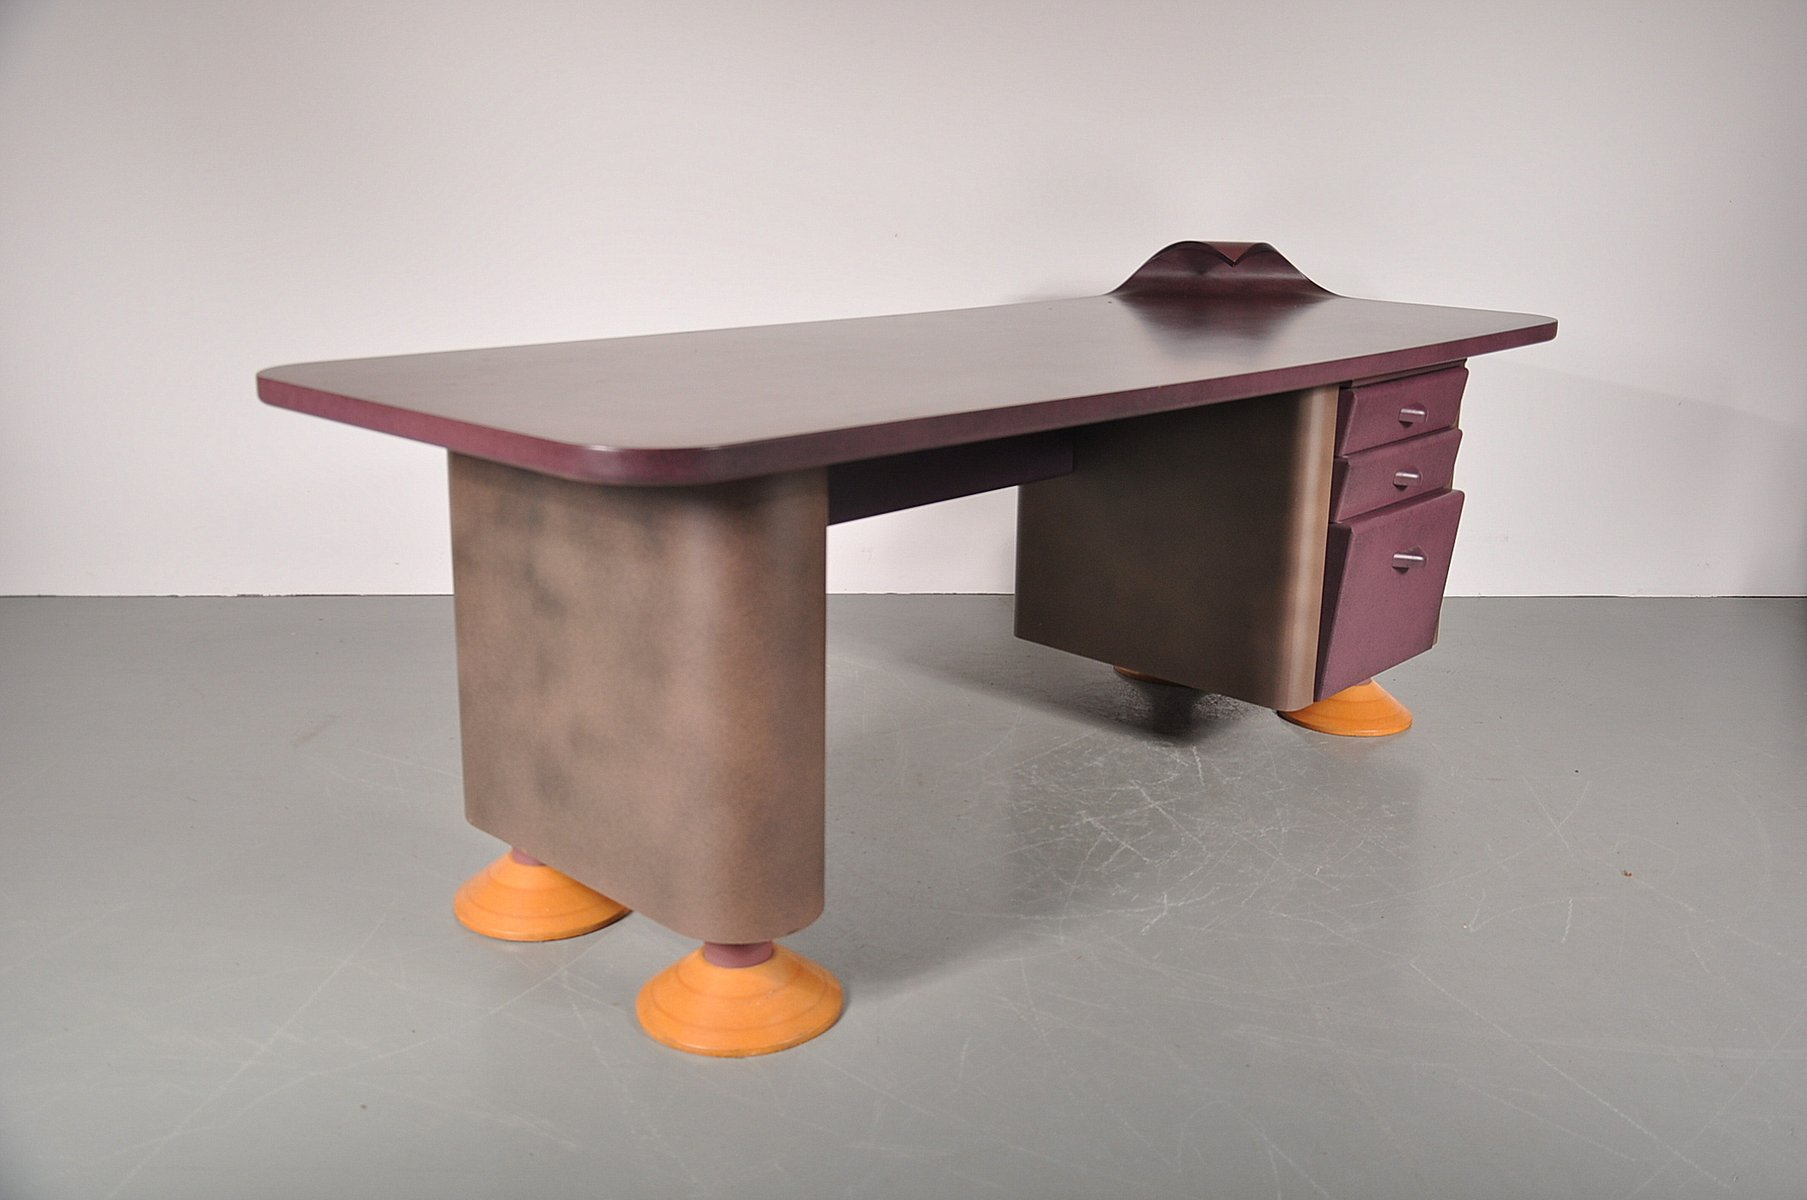 Postmodern Desk with Wave Corner, 1980s for sale at Pamono